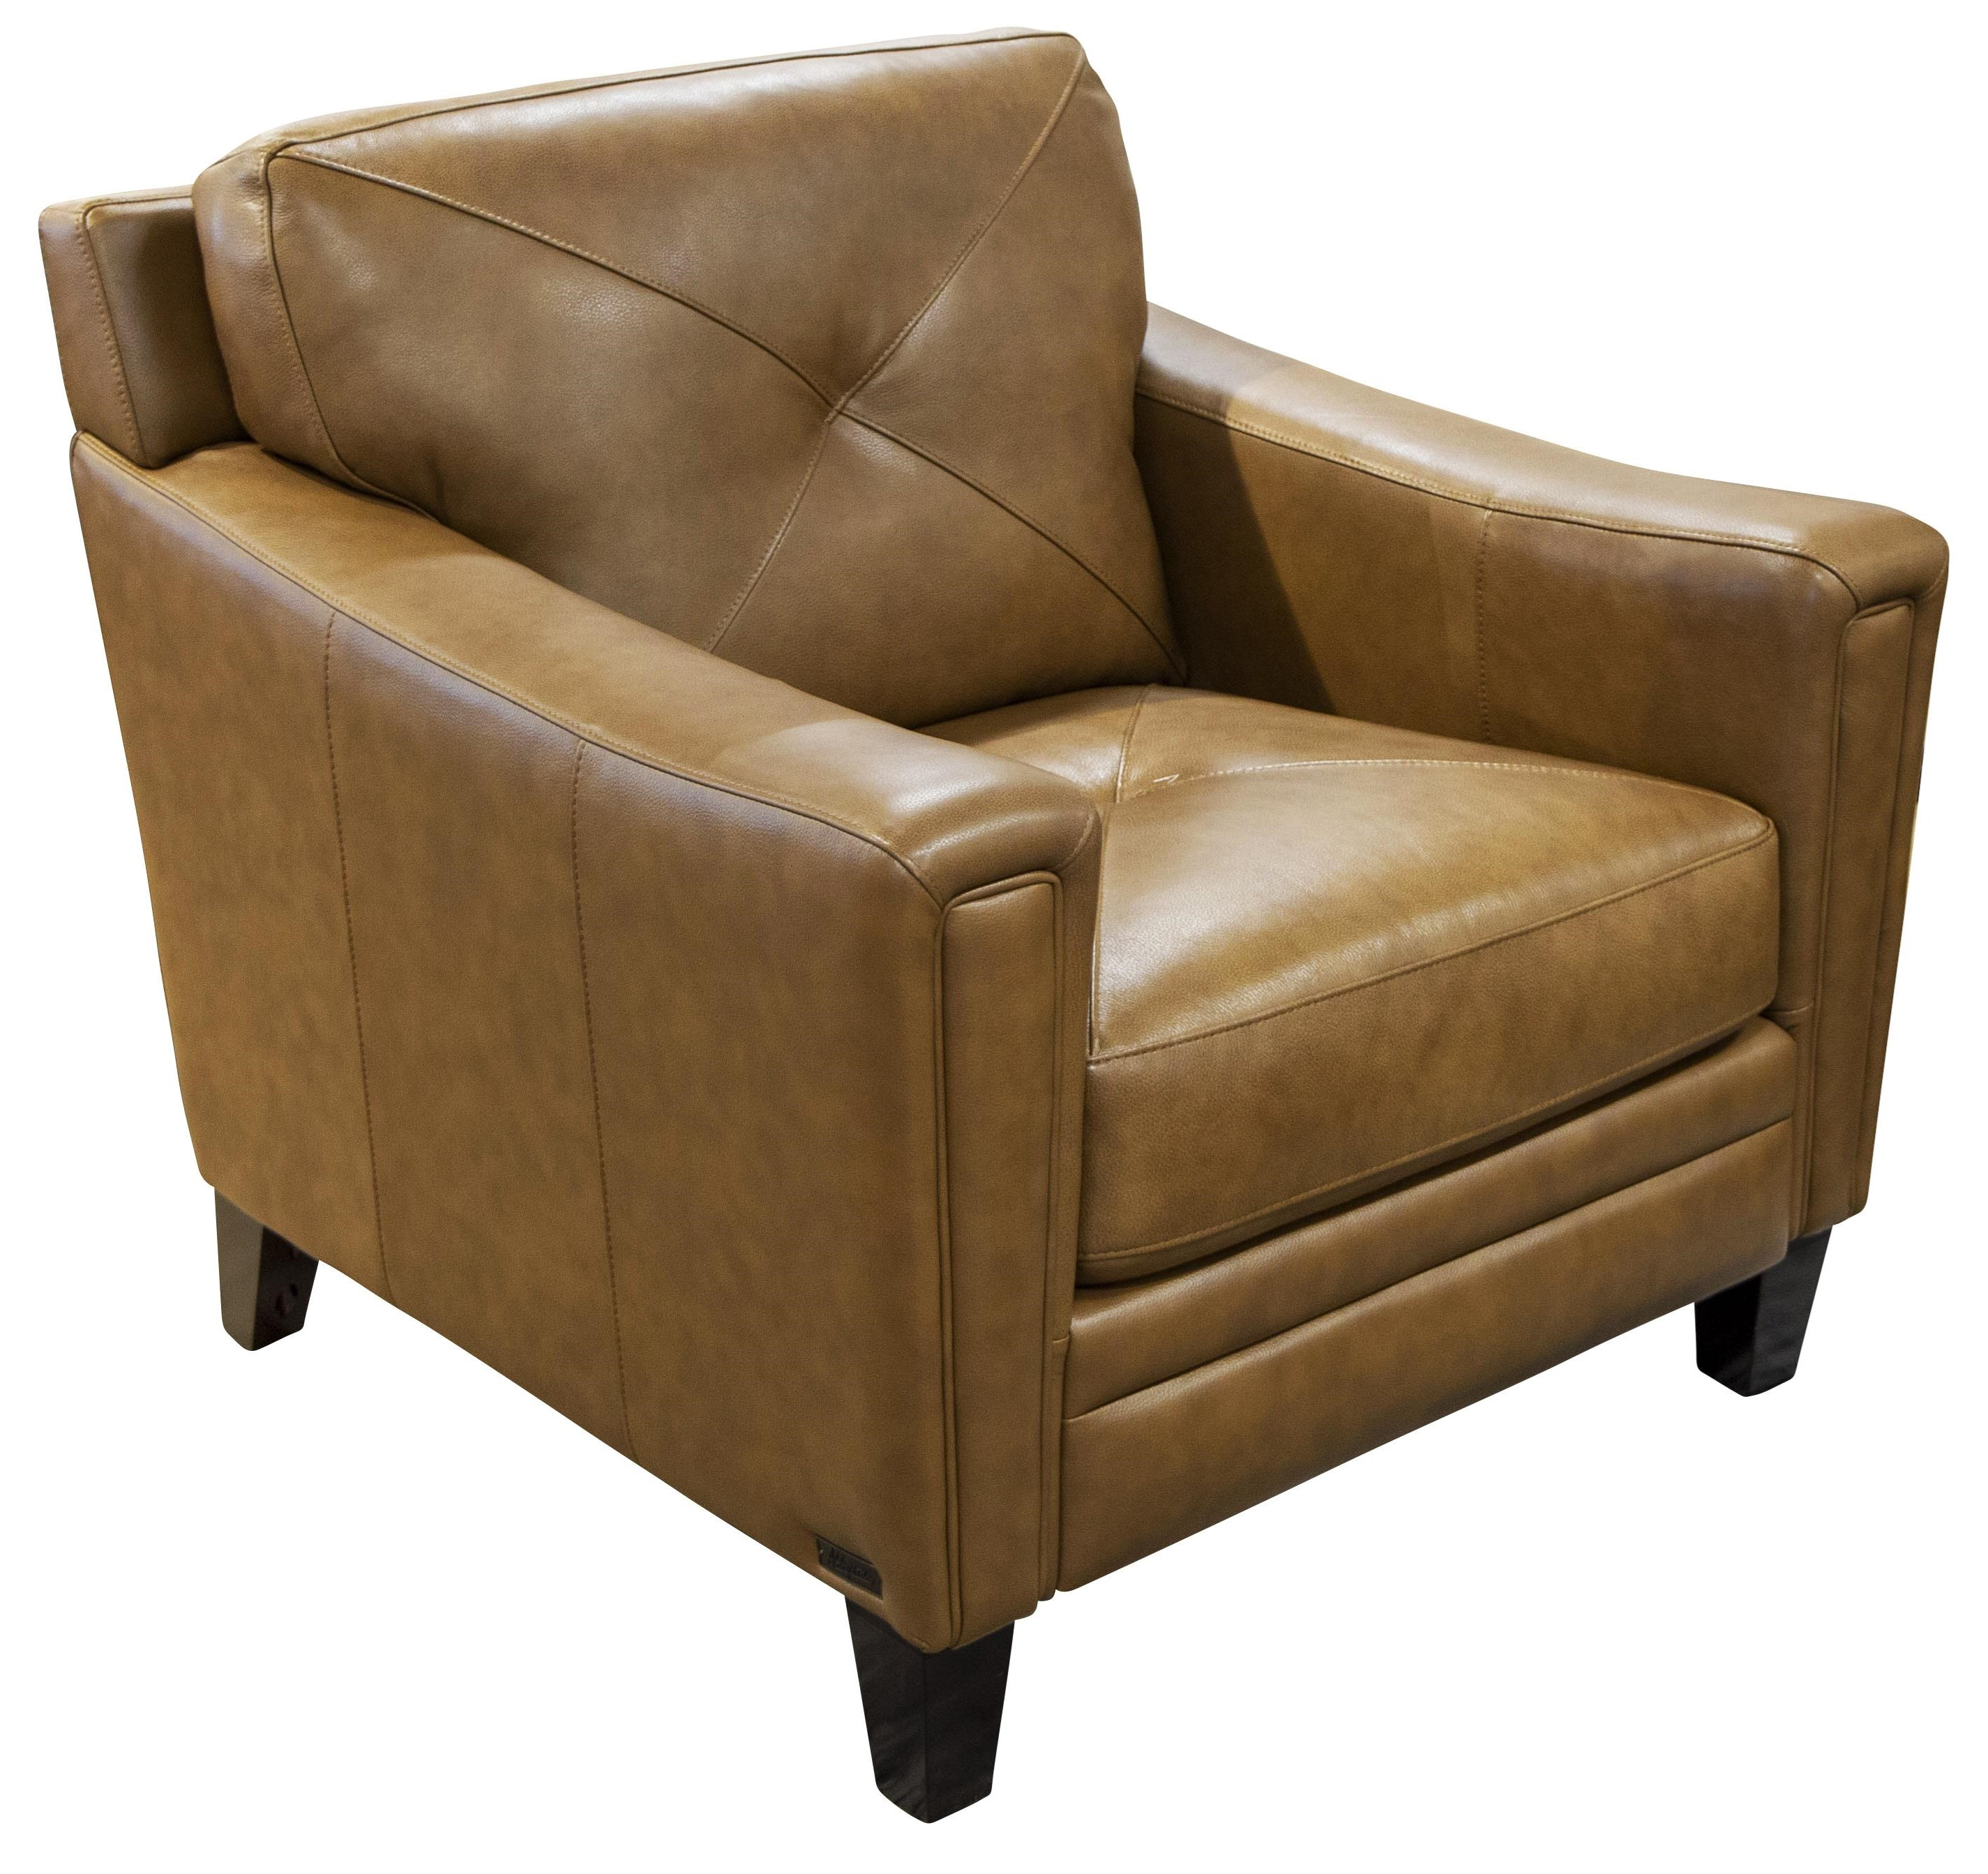 Wren Wren Leather Match Chair by Abbyson at Morris Home